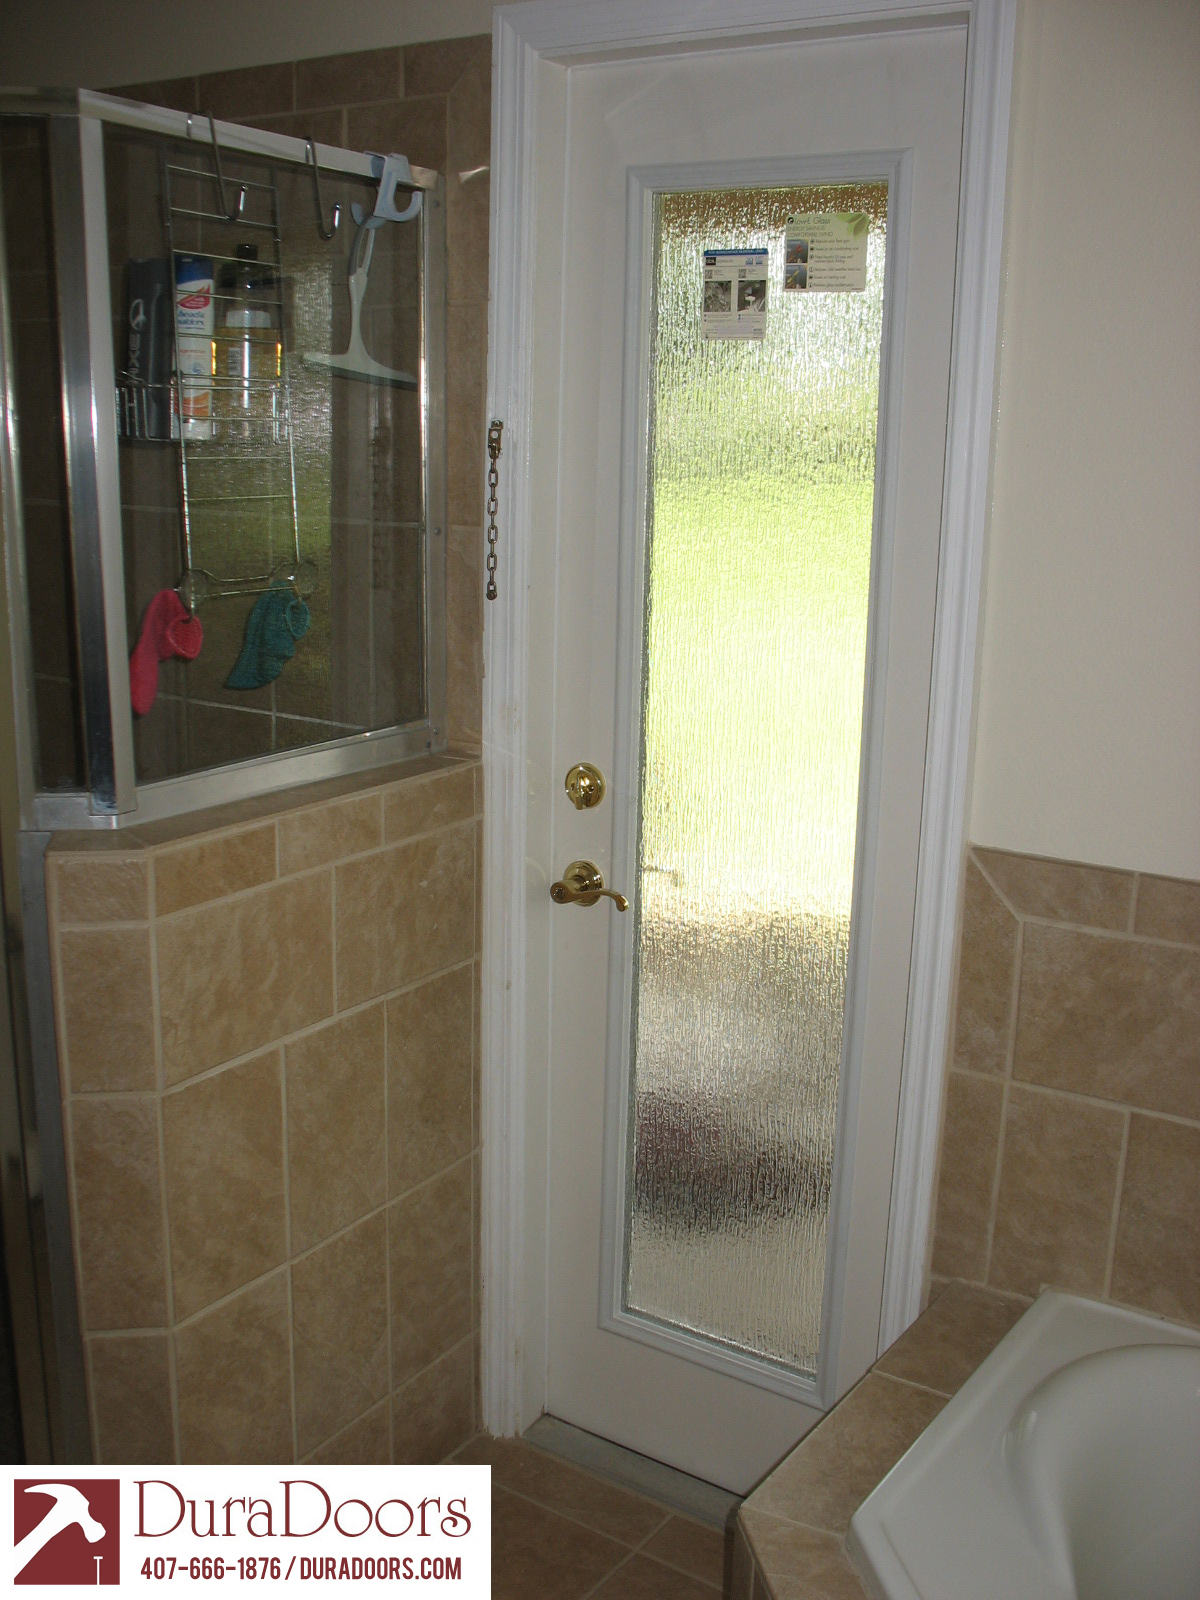 Bathroom Door With Odl Privacy Rain Glass Duradoors